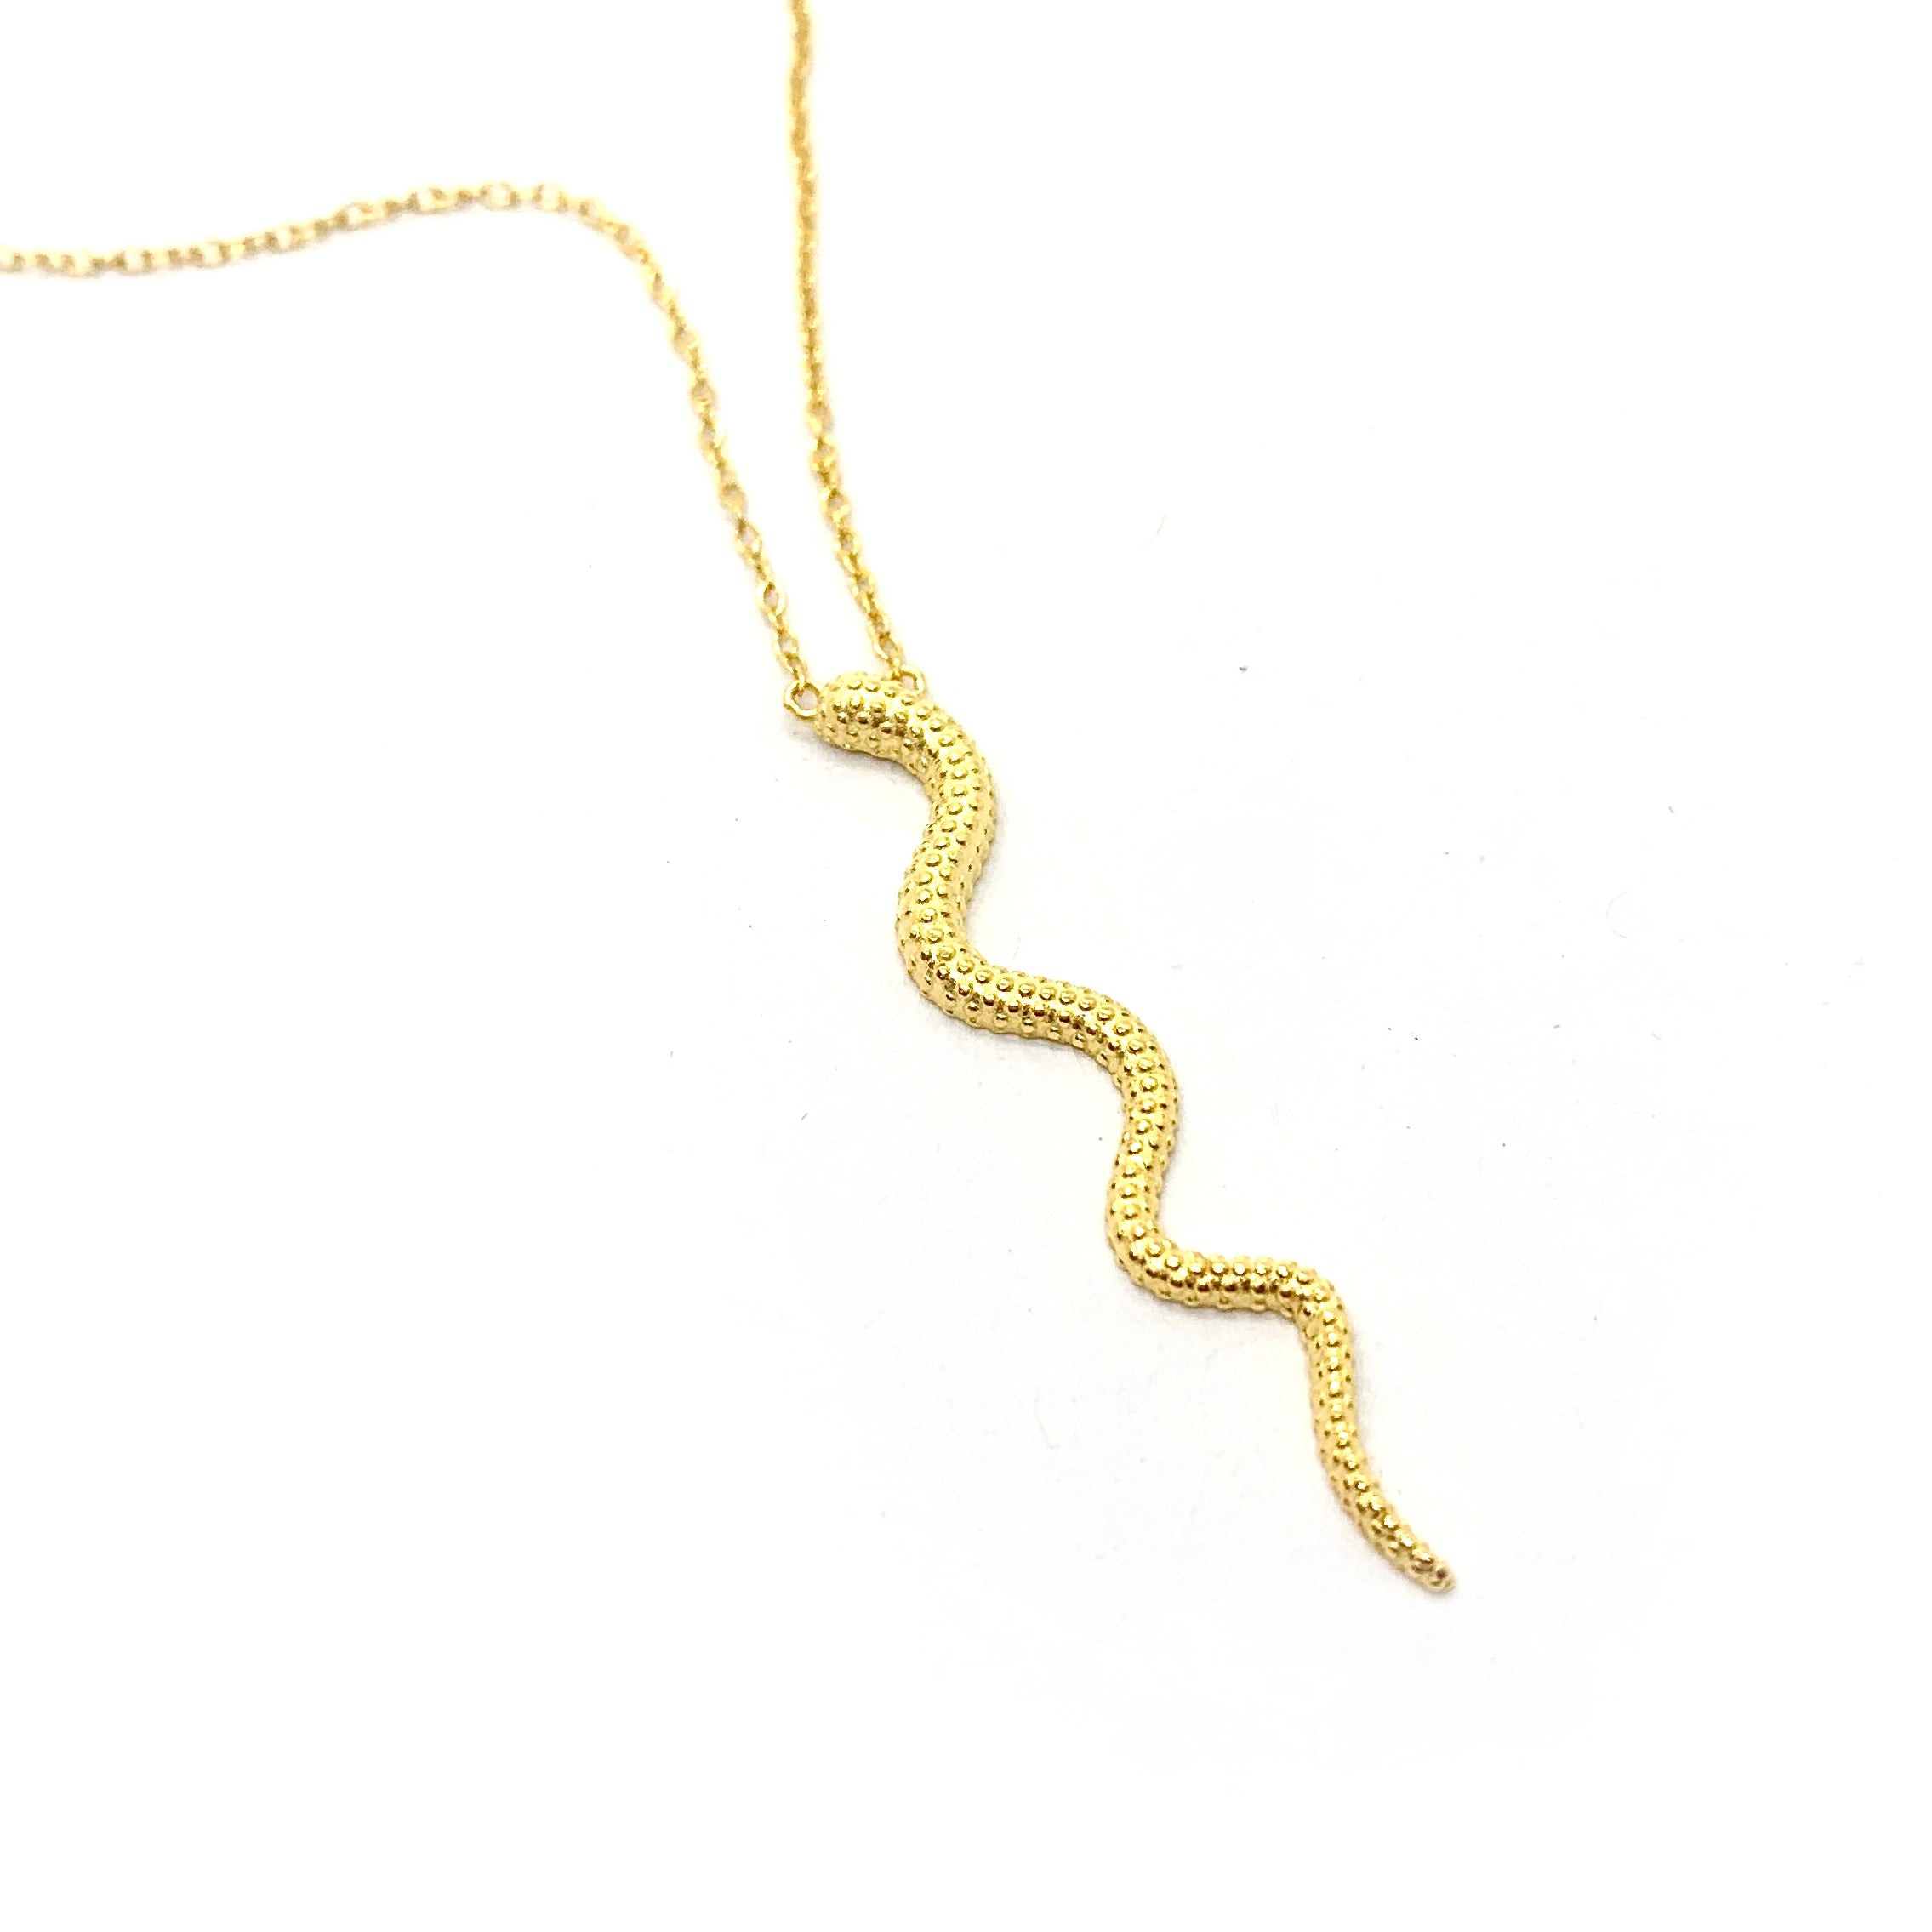 Viper Necklace II